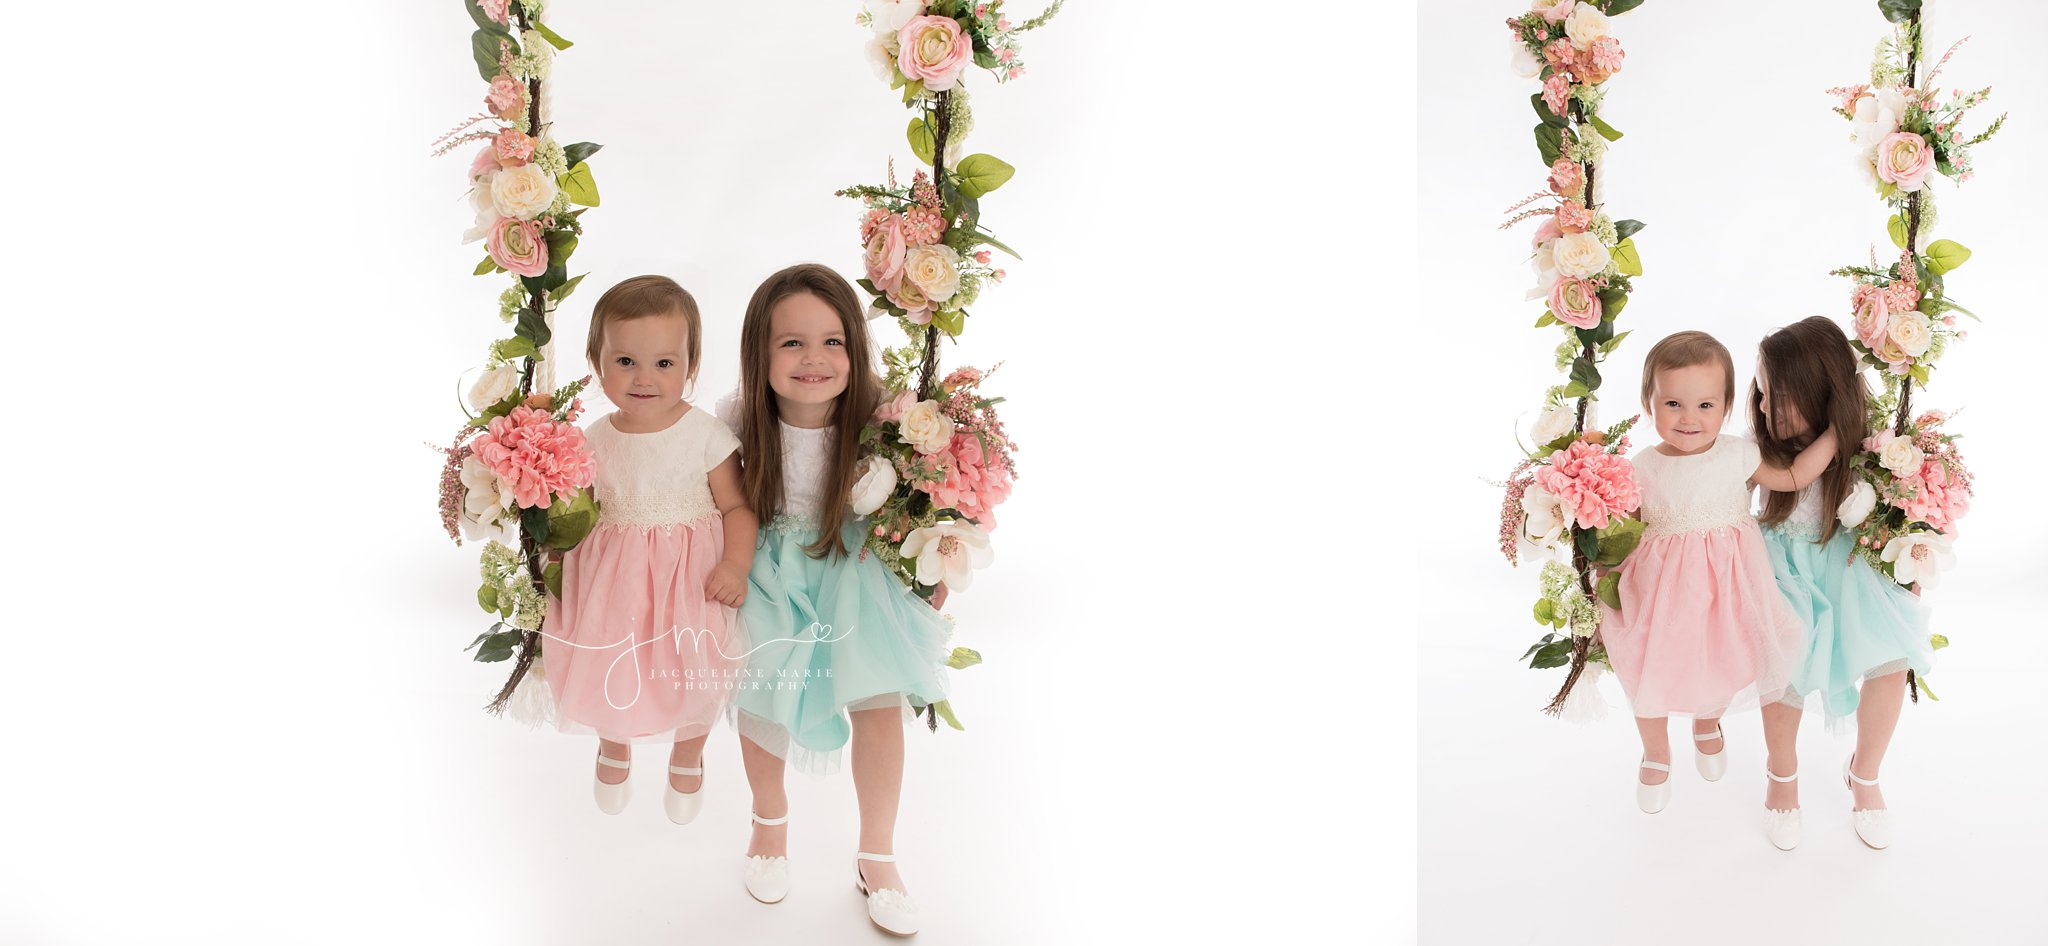 columbus ohio sisters wear dresses while sitting on floral swing for sibling photography portraits